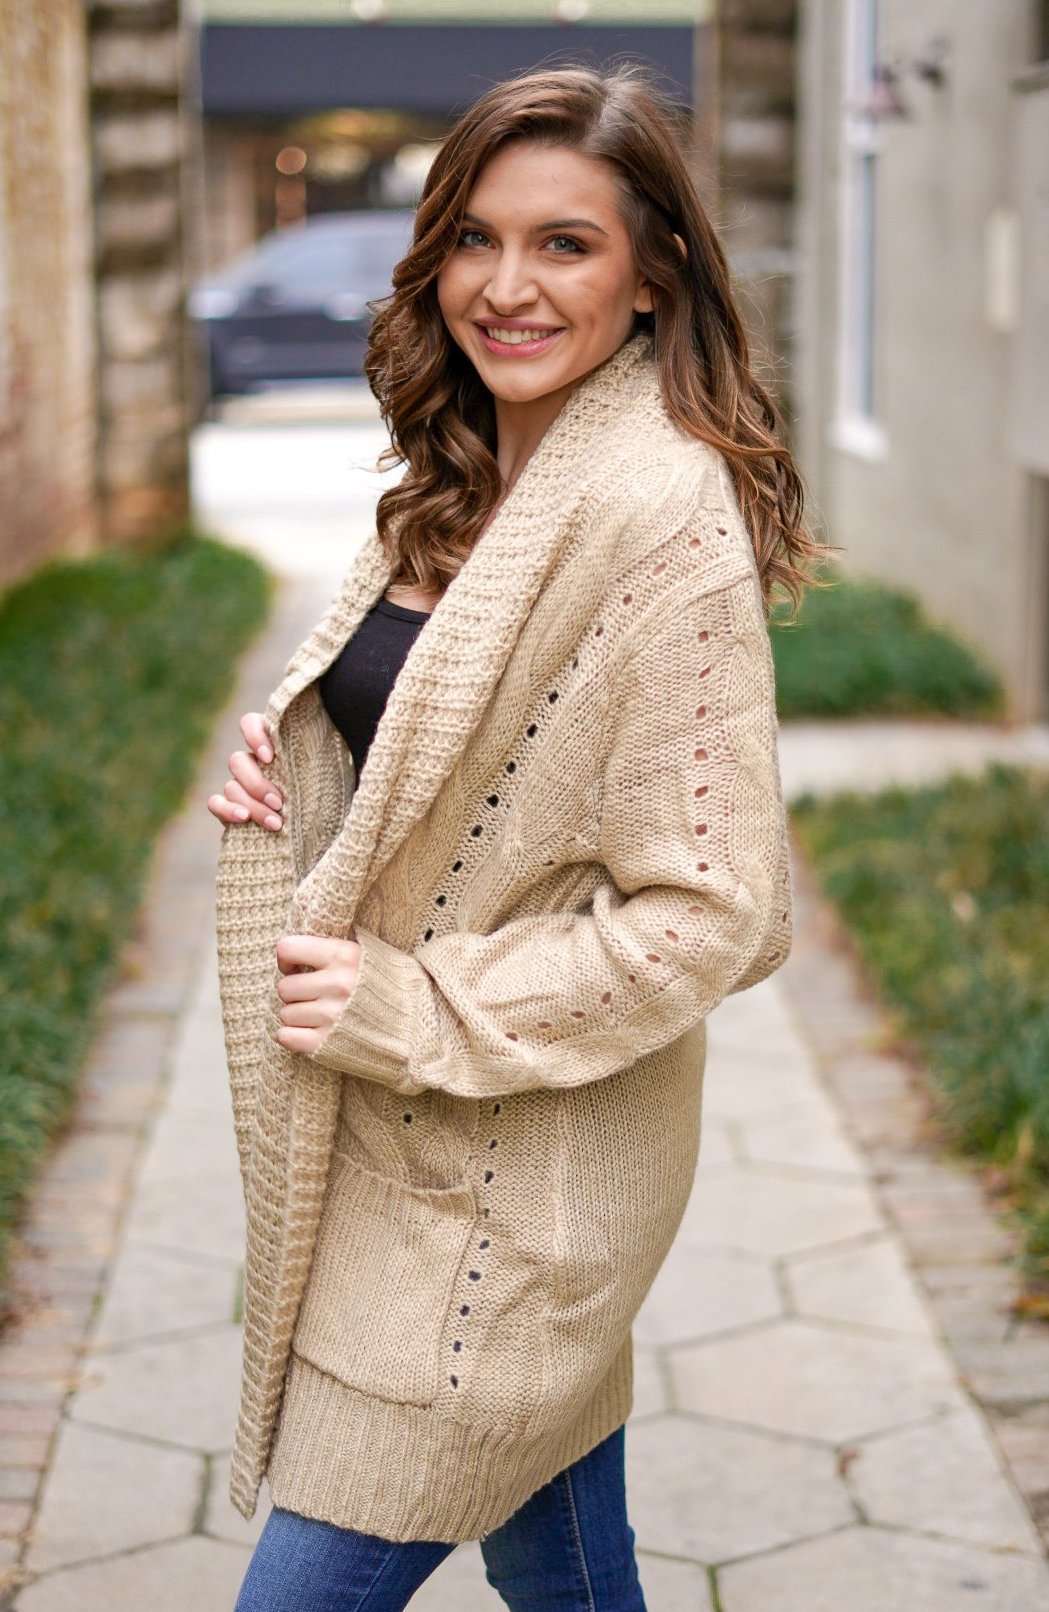 Toasted Marshmallow Cardigan - Tan